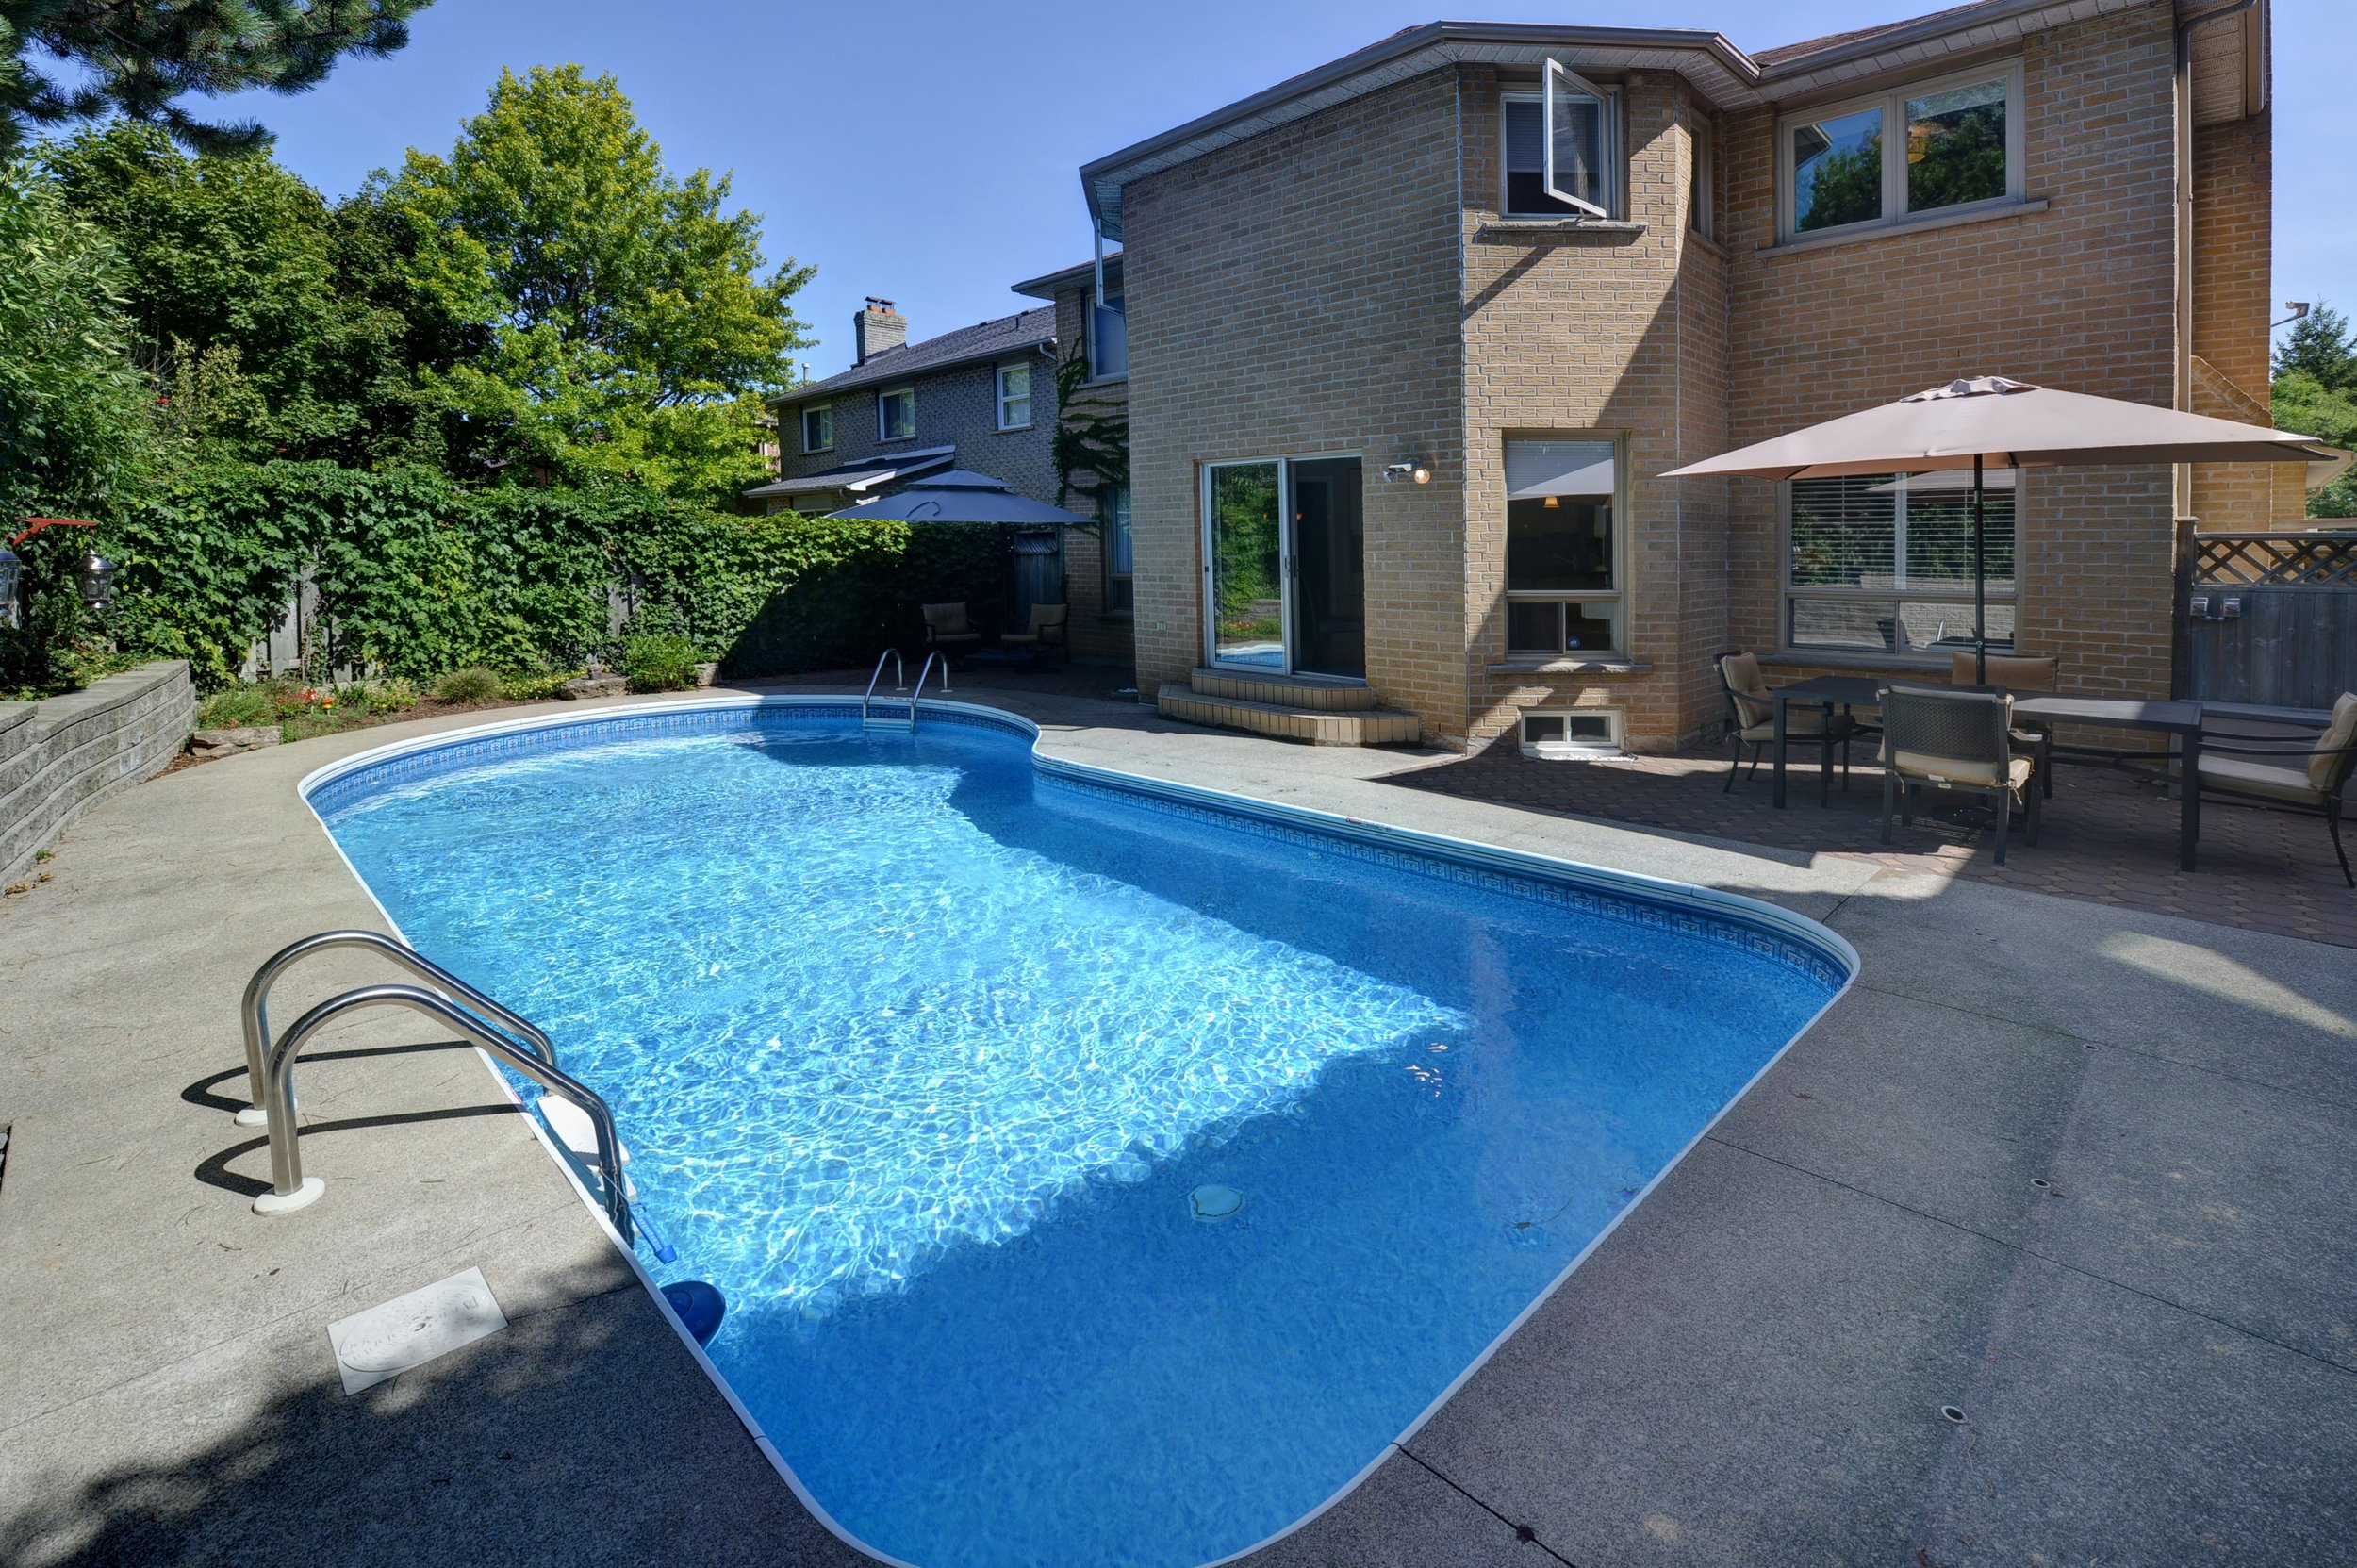 2767_guilford_crescent_MLS30538562_HID1121270_ROOMpool.jpg